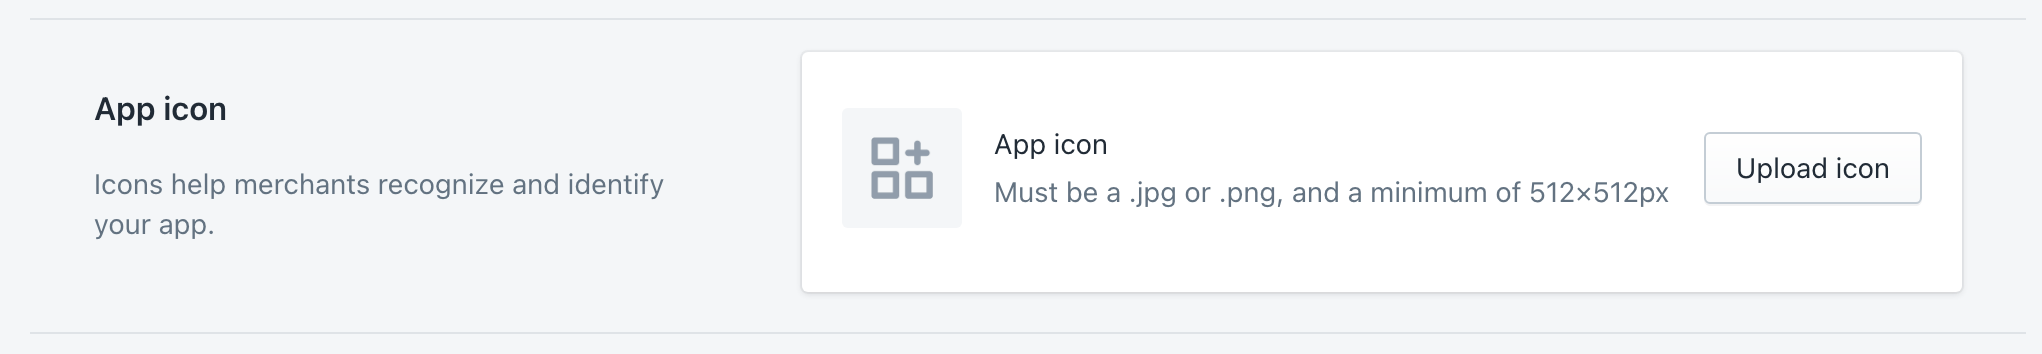 Shopify Partners App Icon upload